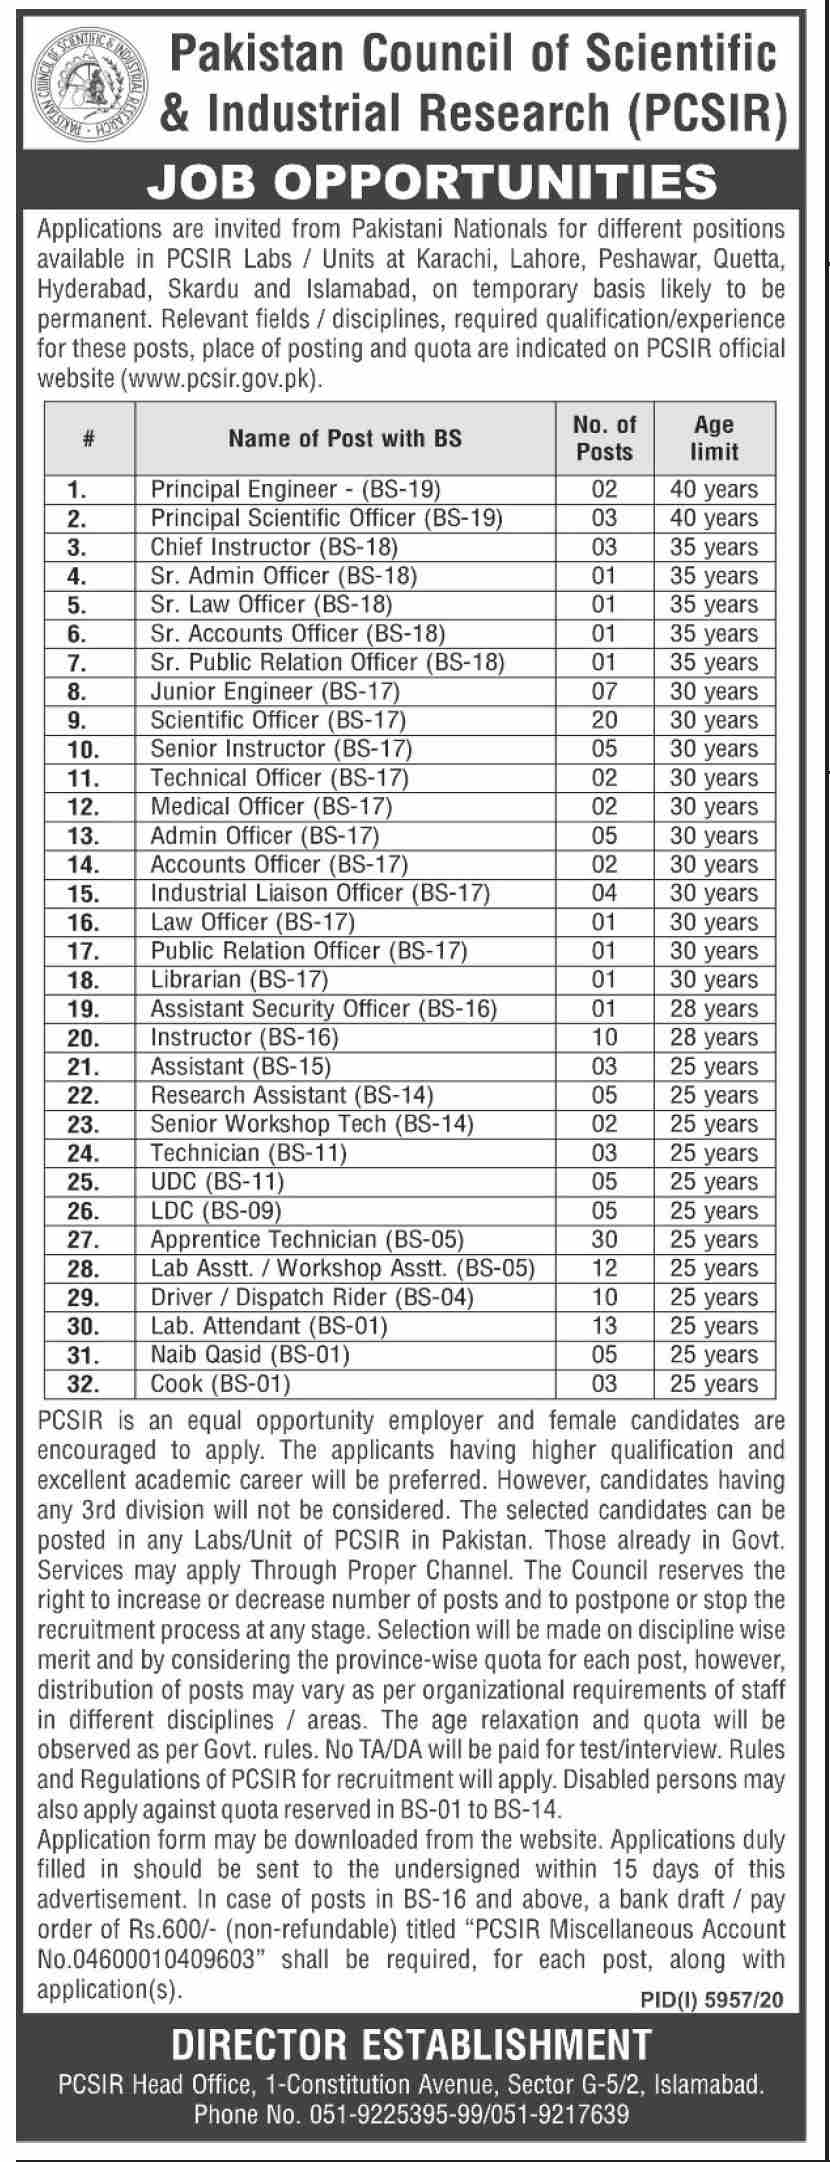 www.pcsir.gov.pk Jobs 2021 - PCSIR Pakistan Council of Scientific & Industrial Research Jobs 2021 in Pakistan